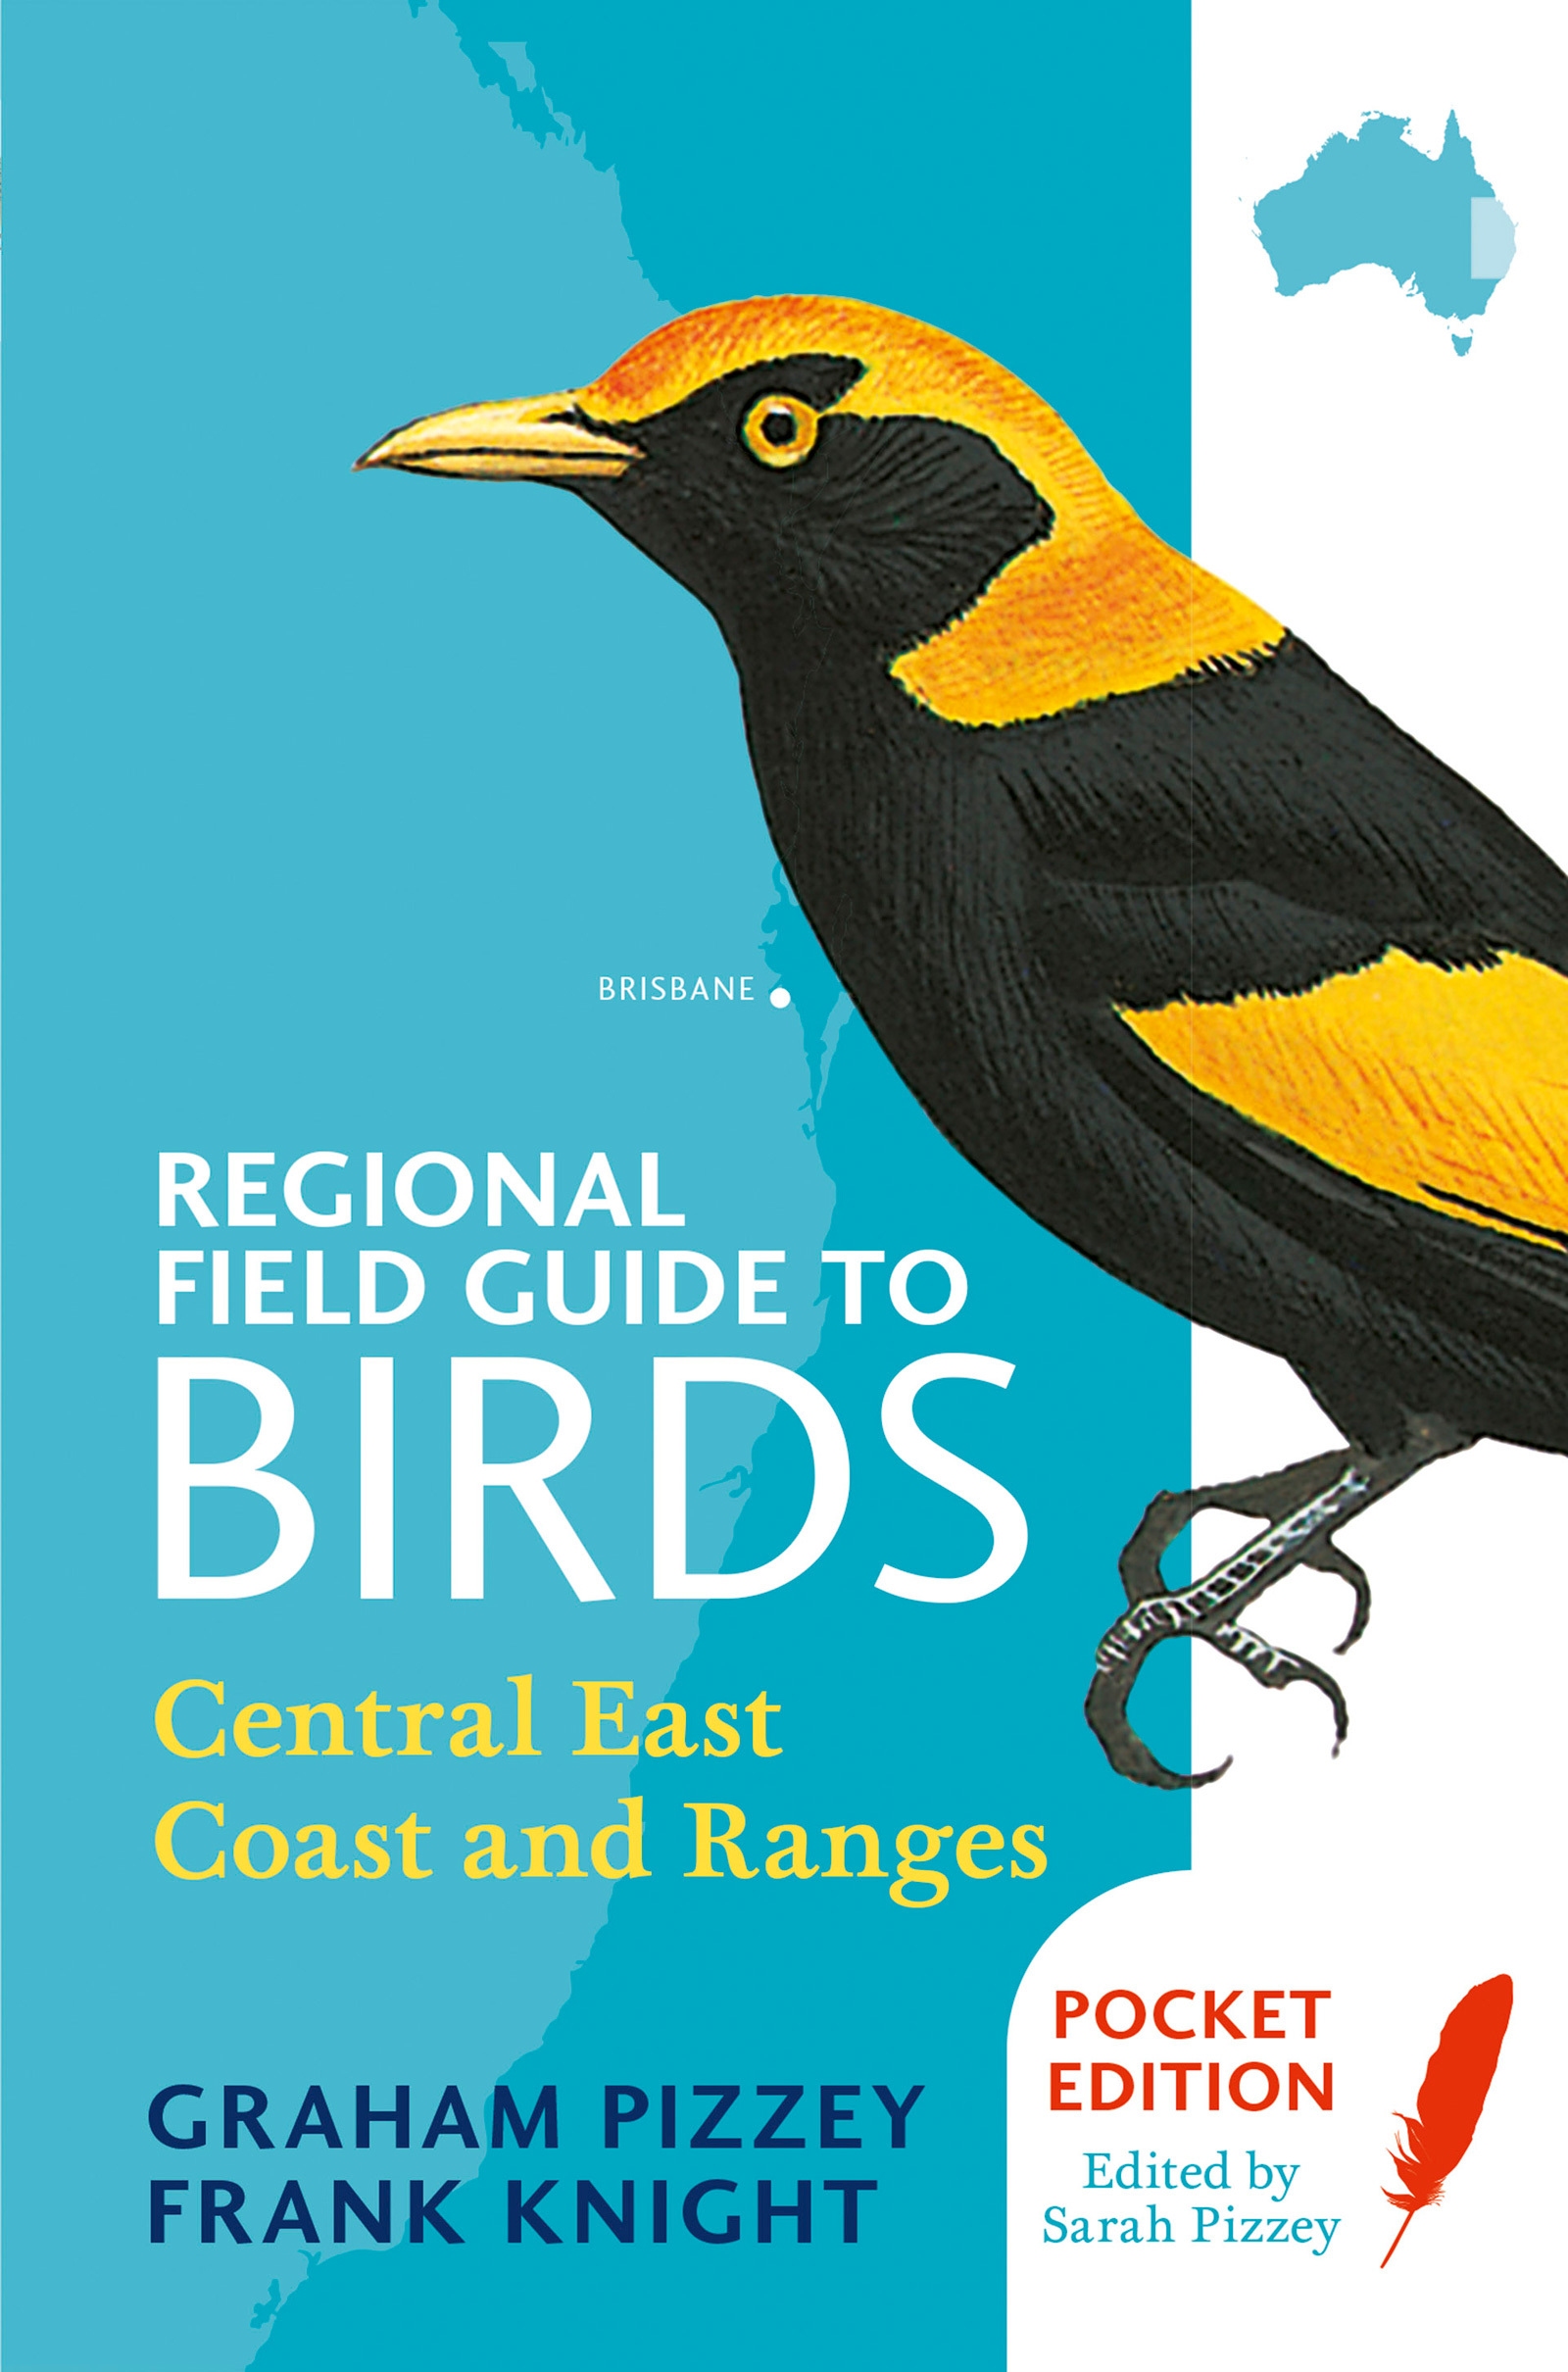 Regional Field Guide to Birds Central East Coast and Ranges Coast